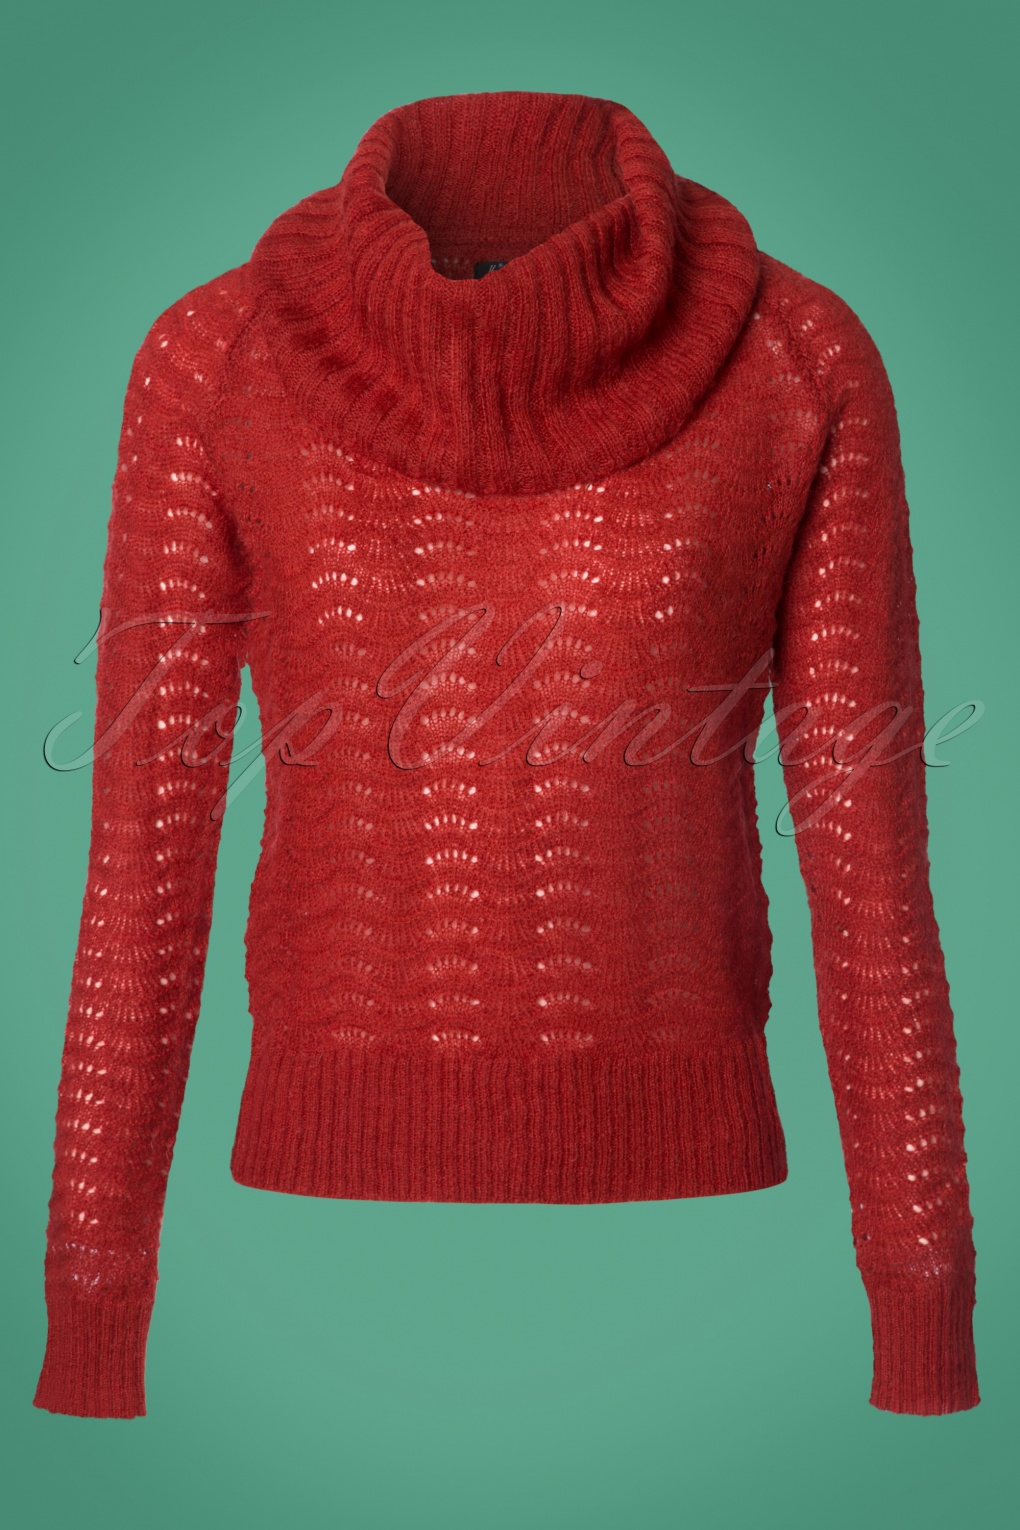 Vintage Sweaters: 1940s, 1950s, 1960s Pictures 60s Bayonne Royal Collar Wool Top in Sienna Red £86.40 AT vintagedancer.com